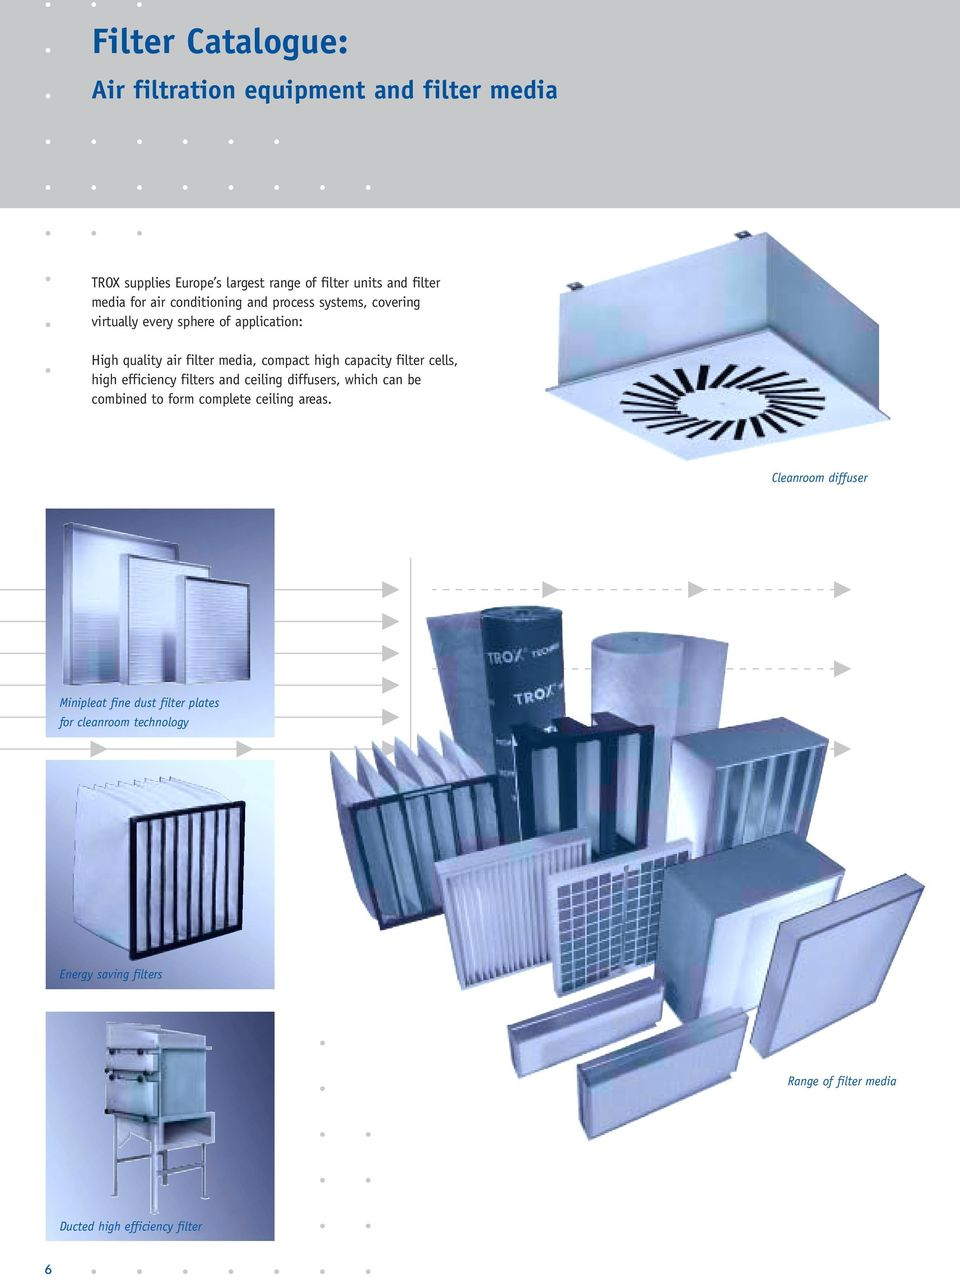 capacity filter cells, high efficiency filters and ceiling diffusers, which can be combined to form complete ceiling areas.